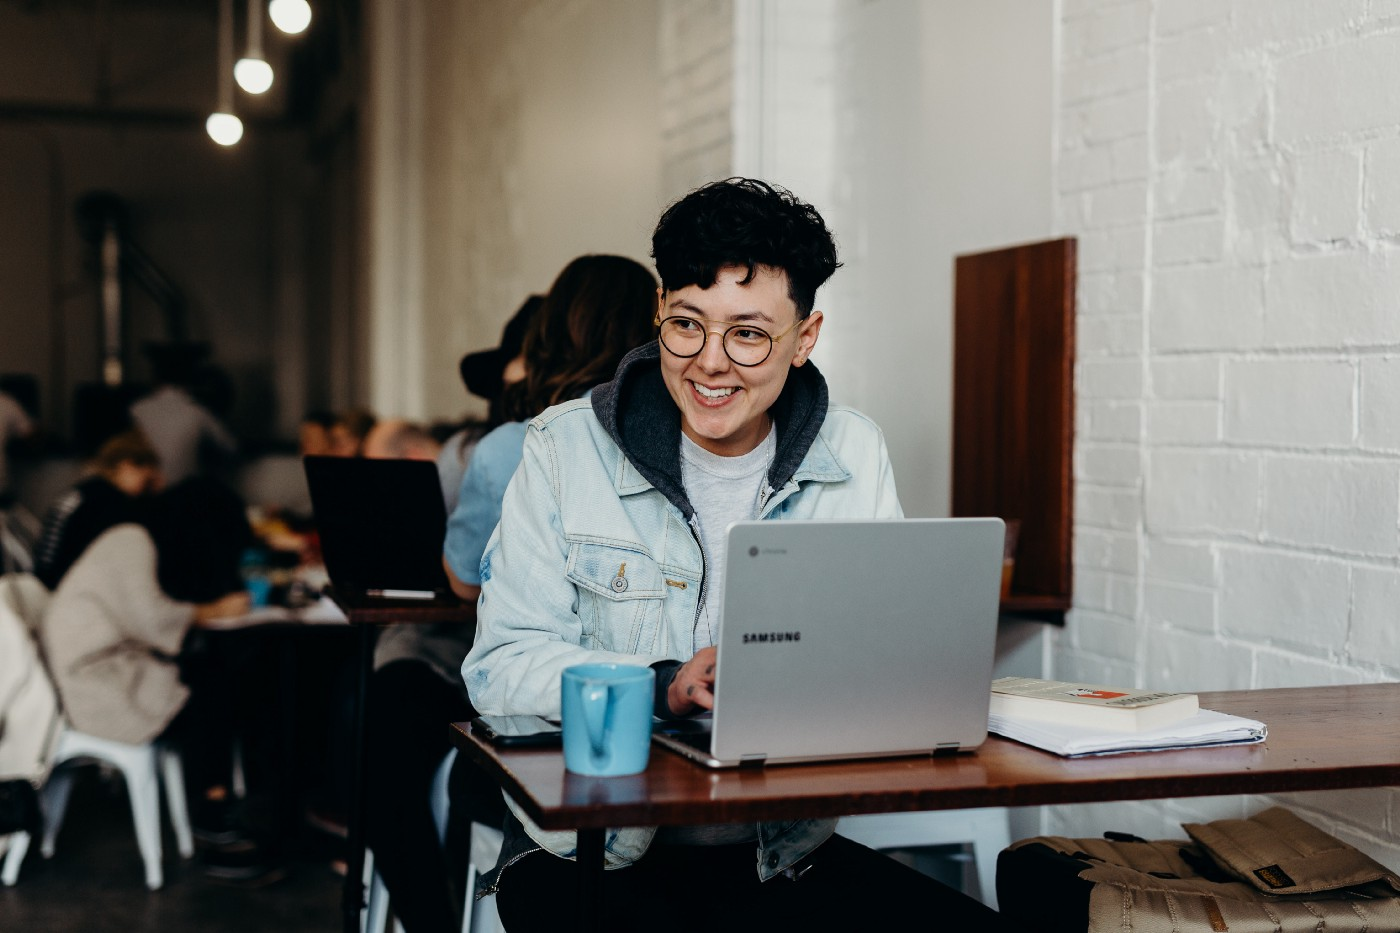 Woman sitting in front of an open laptop in a café, smiling